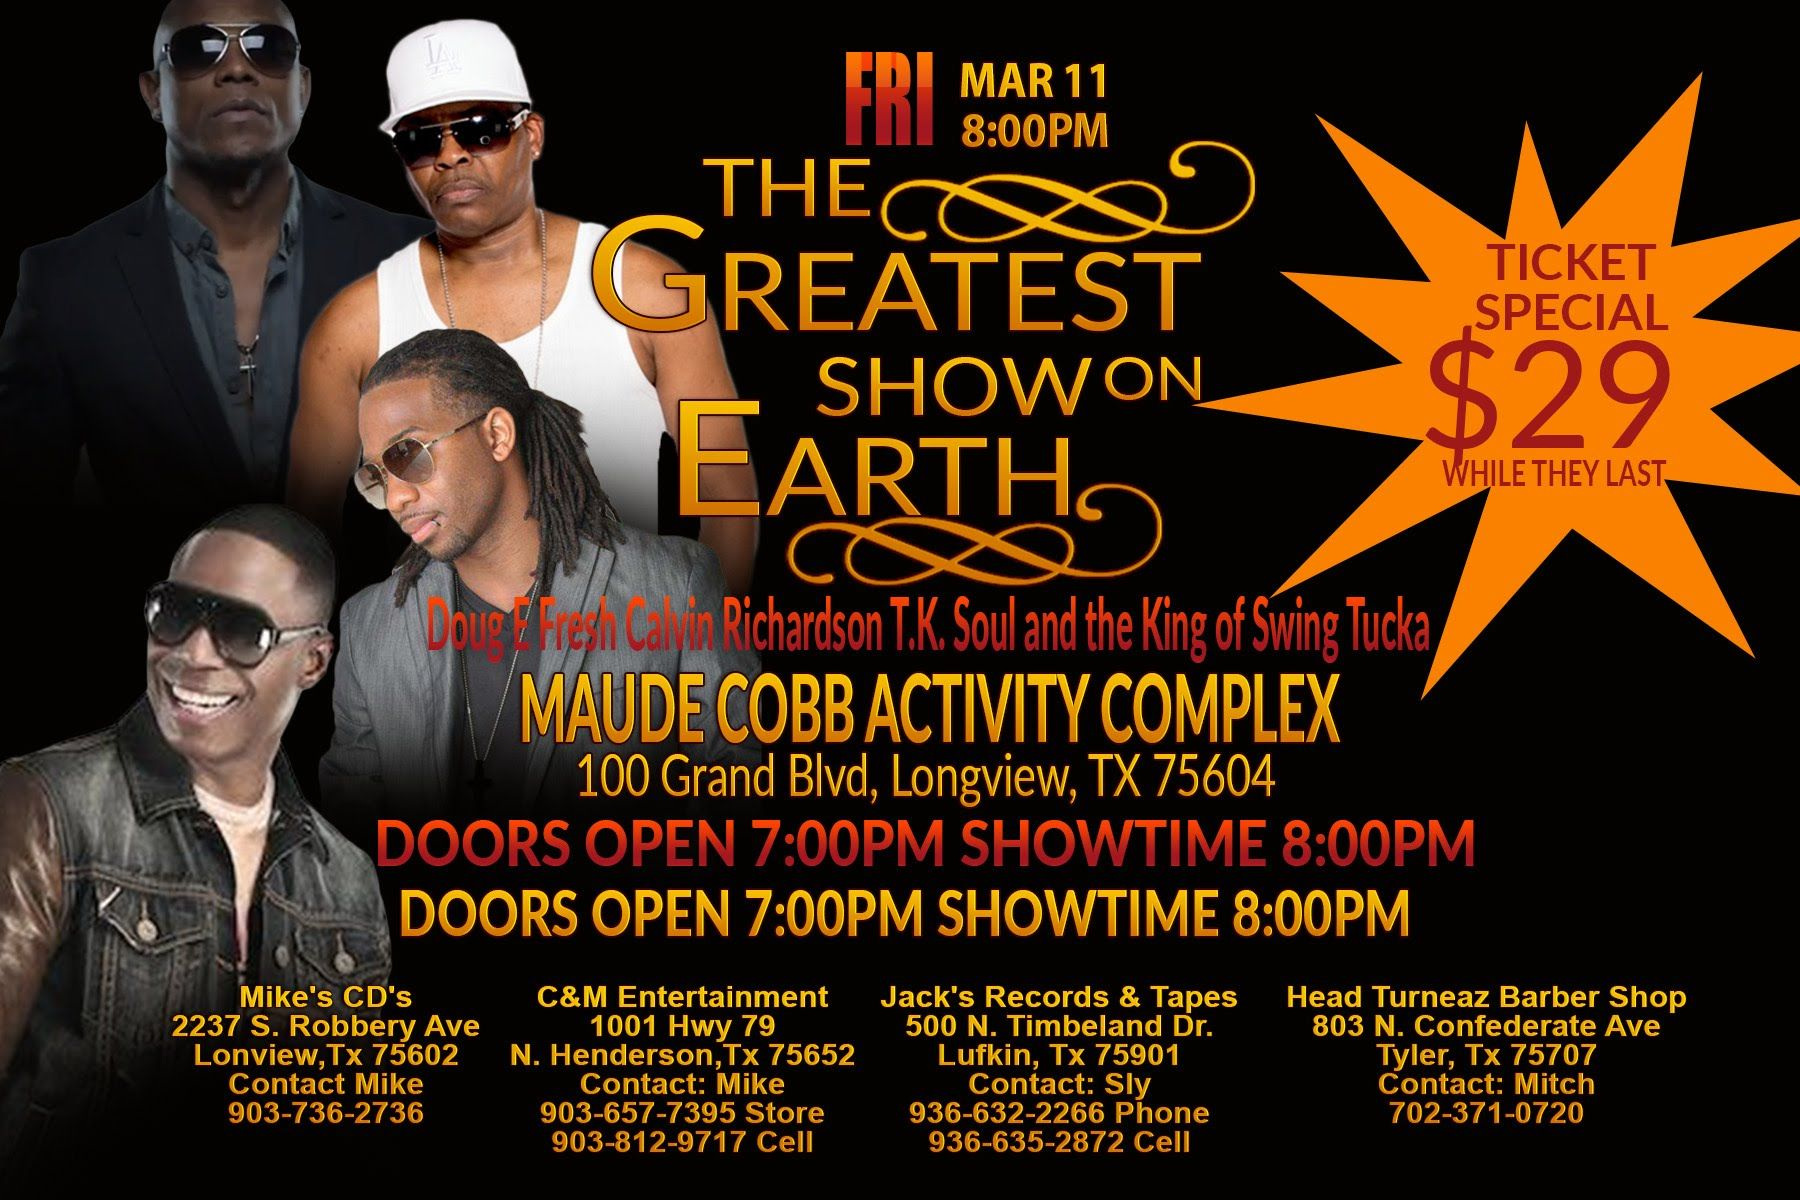 THE GREATEST SHOW ON EARTH Tickets $29 While They THE GREATEST SHOW ON EARTH tickets $29 while they last DOUG E FRESH, CALVIN RICHARDSON, TK SOUL, KING OF SWING TUCKA (Click Here For Tickets) http://www.outhousetickets.com/Event/Event7734/Last DOUG E FRESH, CAL...